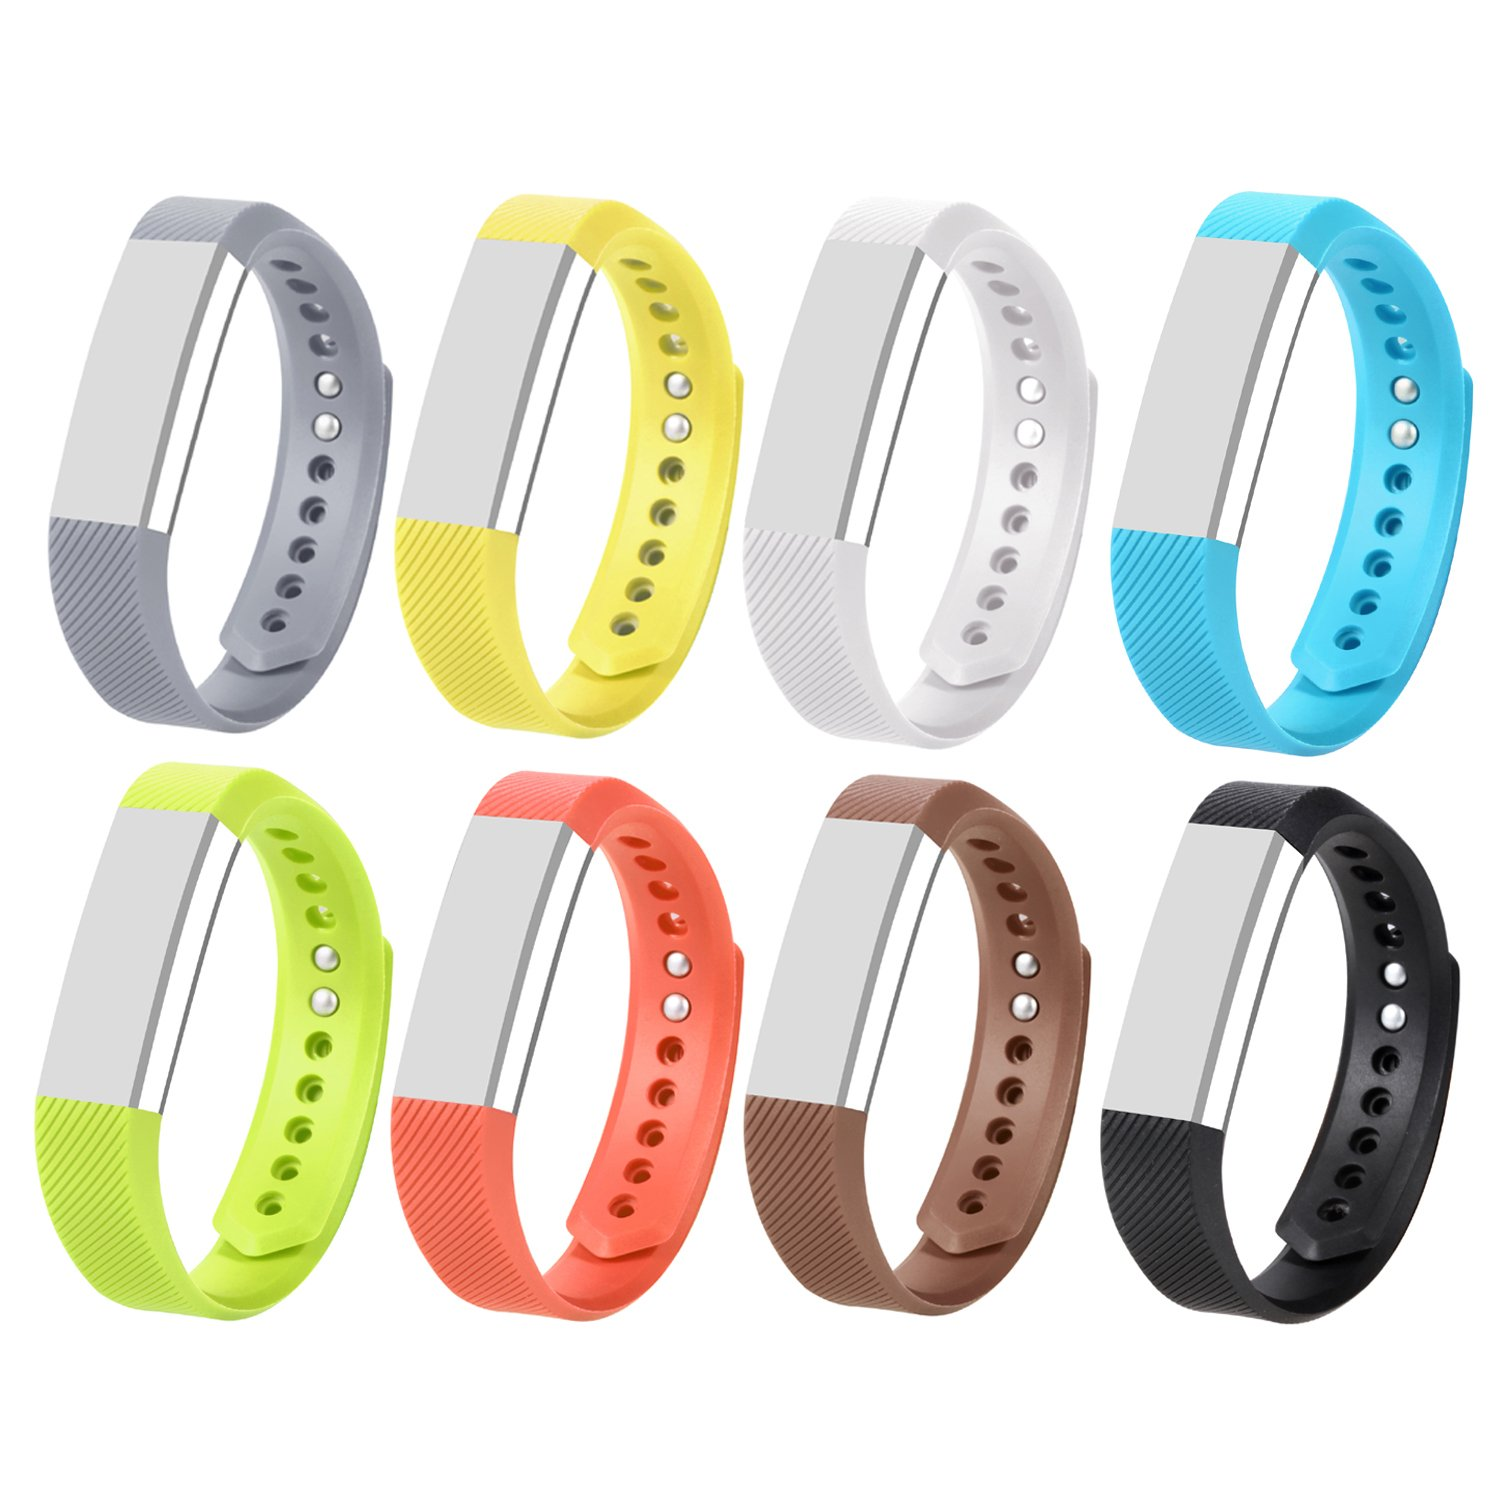 Correa de repuesto con cierres de seguridad de mtsugar, para Fitbit Alta y Fitbit Alta HR (no incluye el monitor, solo las correas de repuesto) , Pack of 8, Large Pack of 8, Large